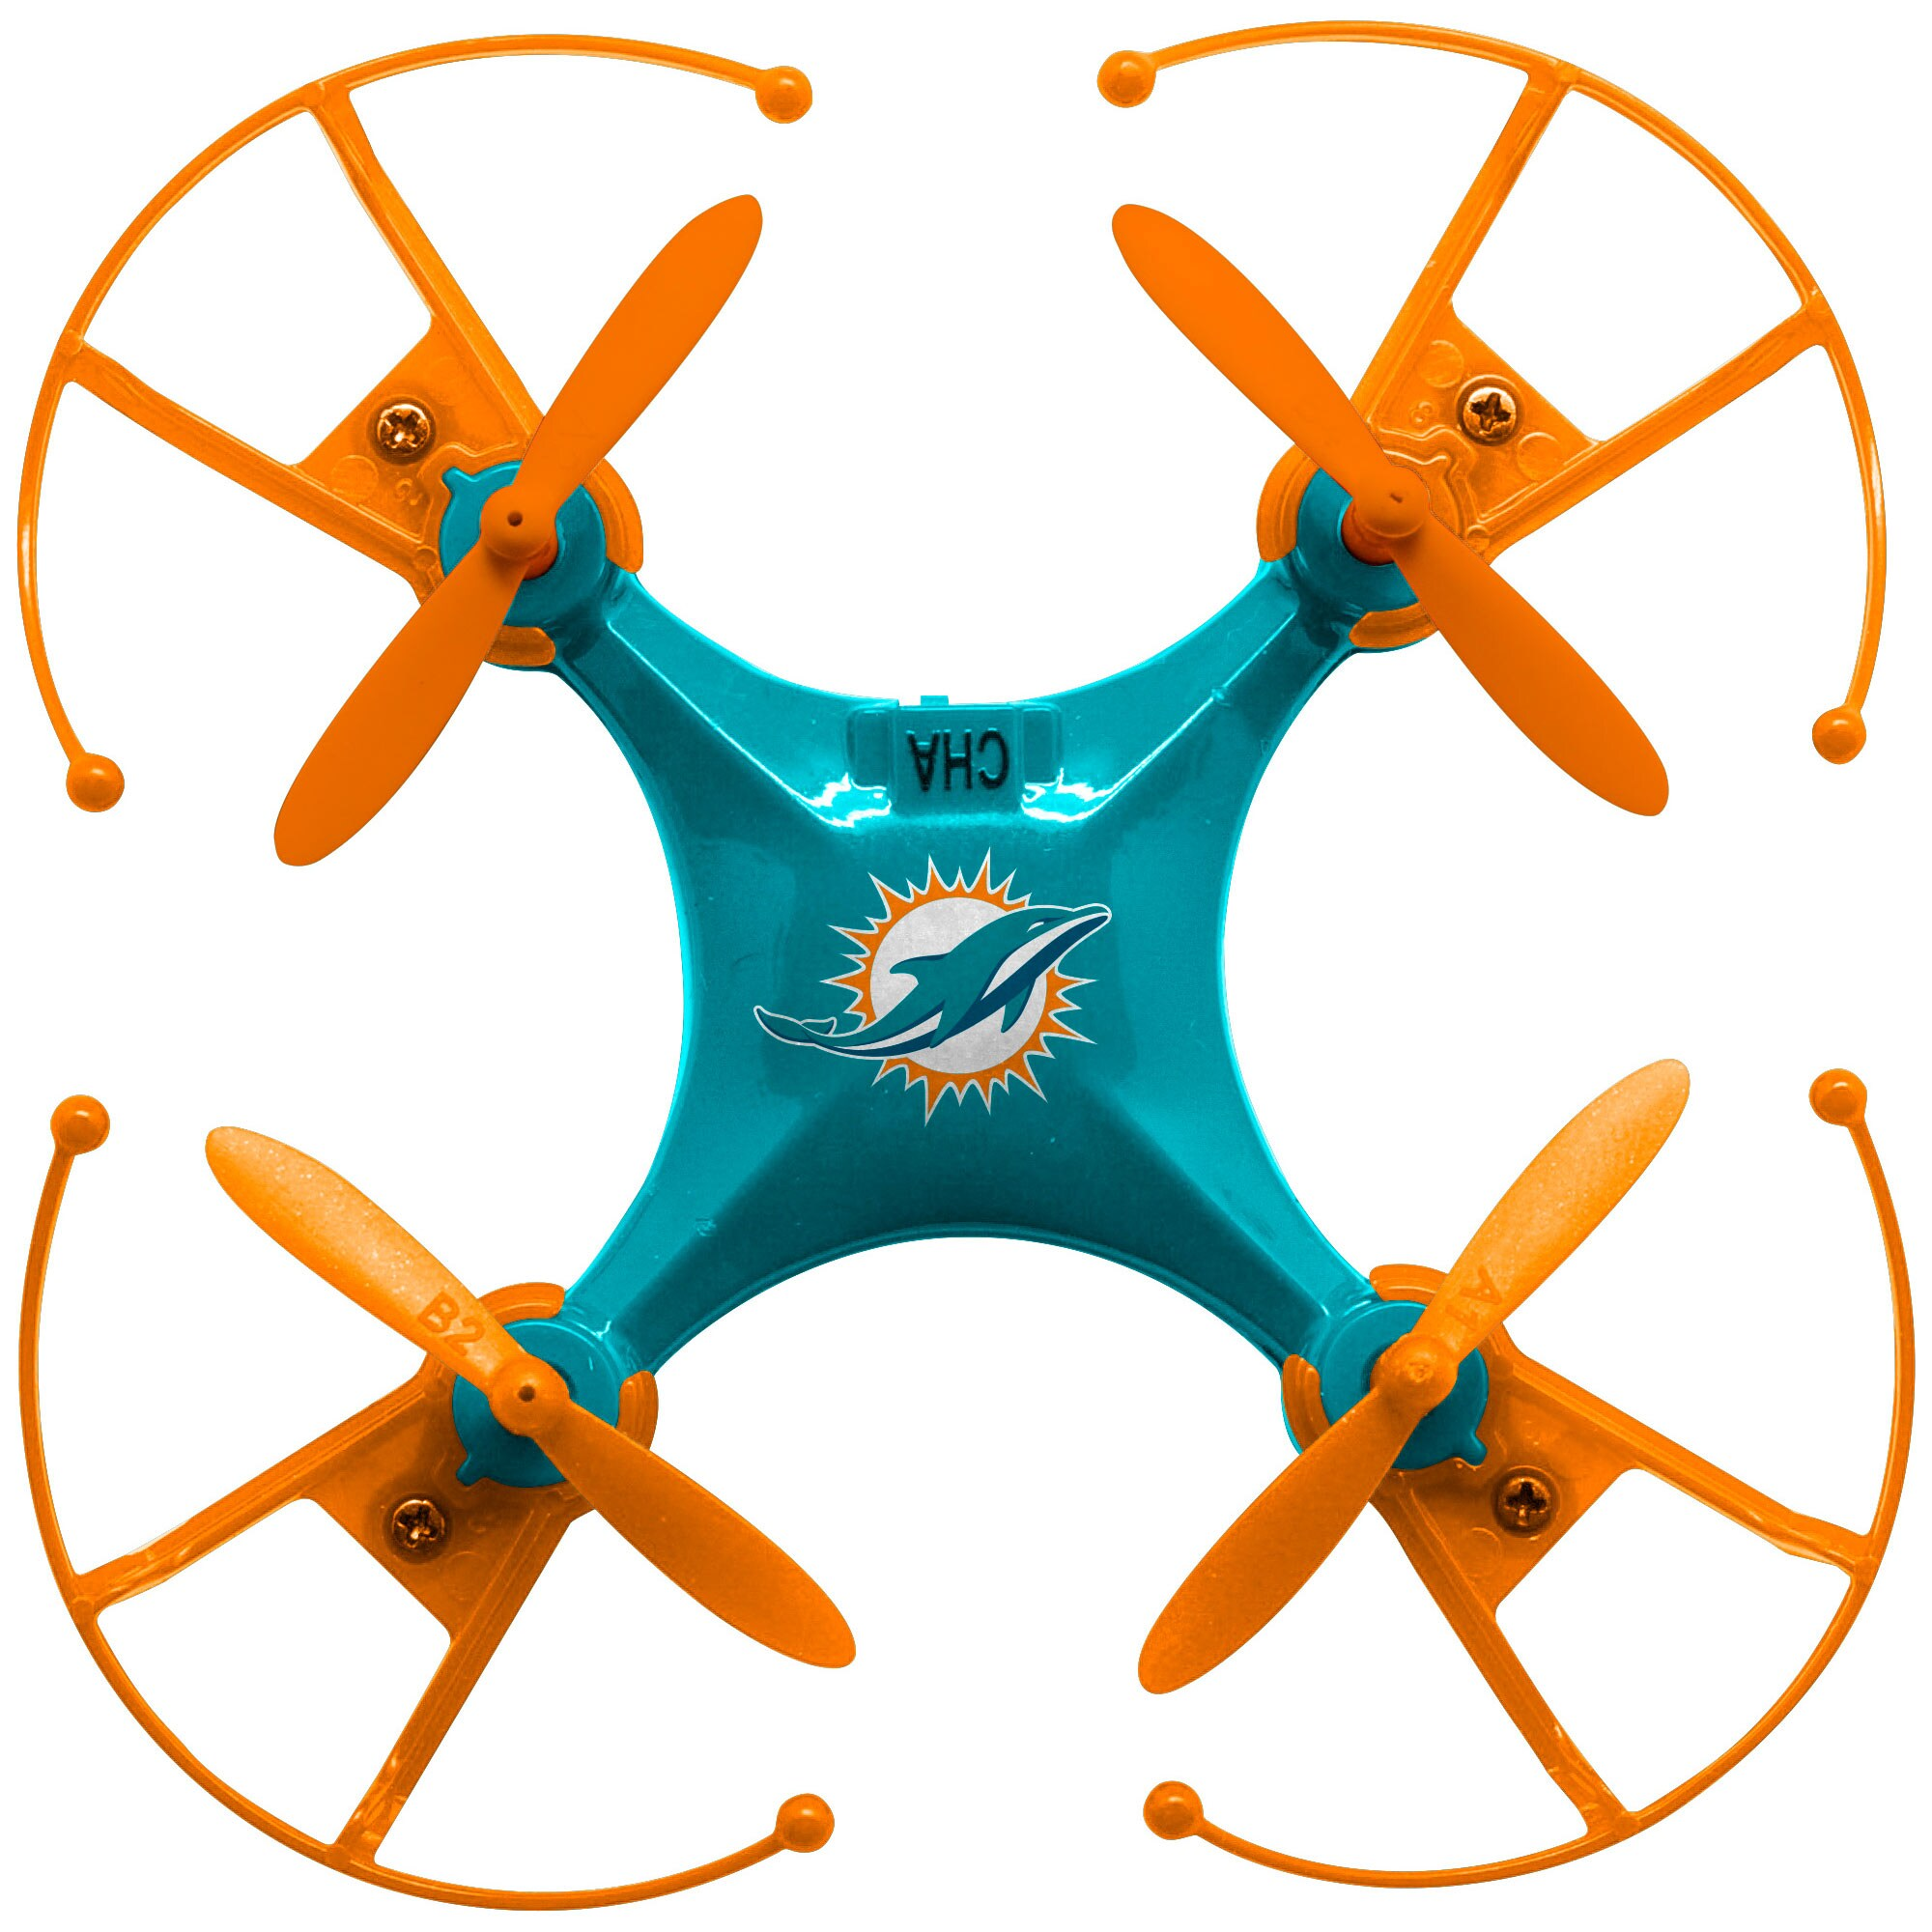 Miami Dolphins NFL Micro Drone